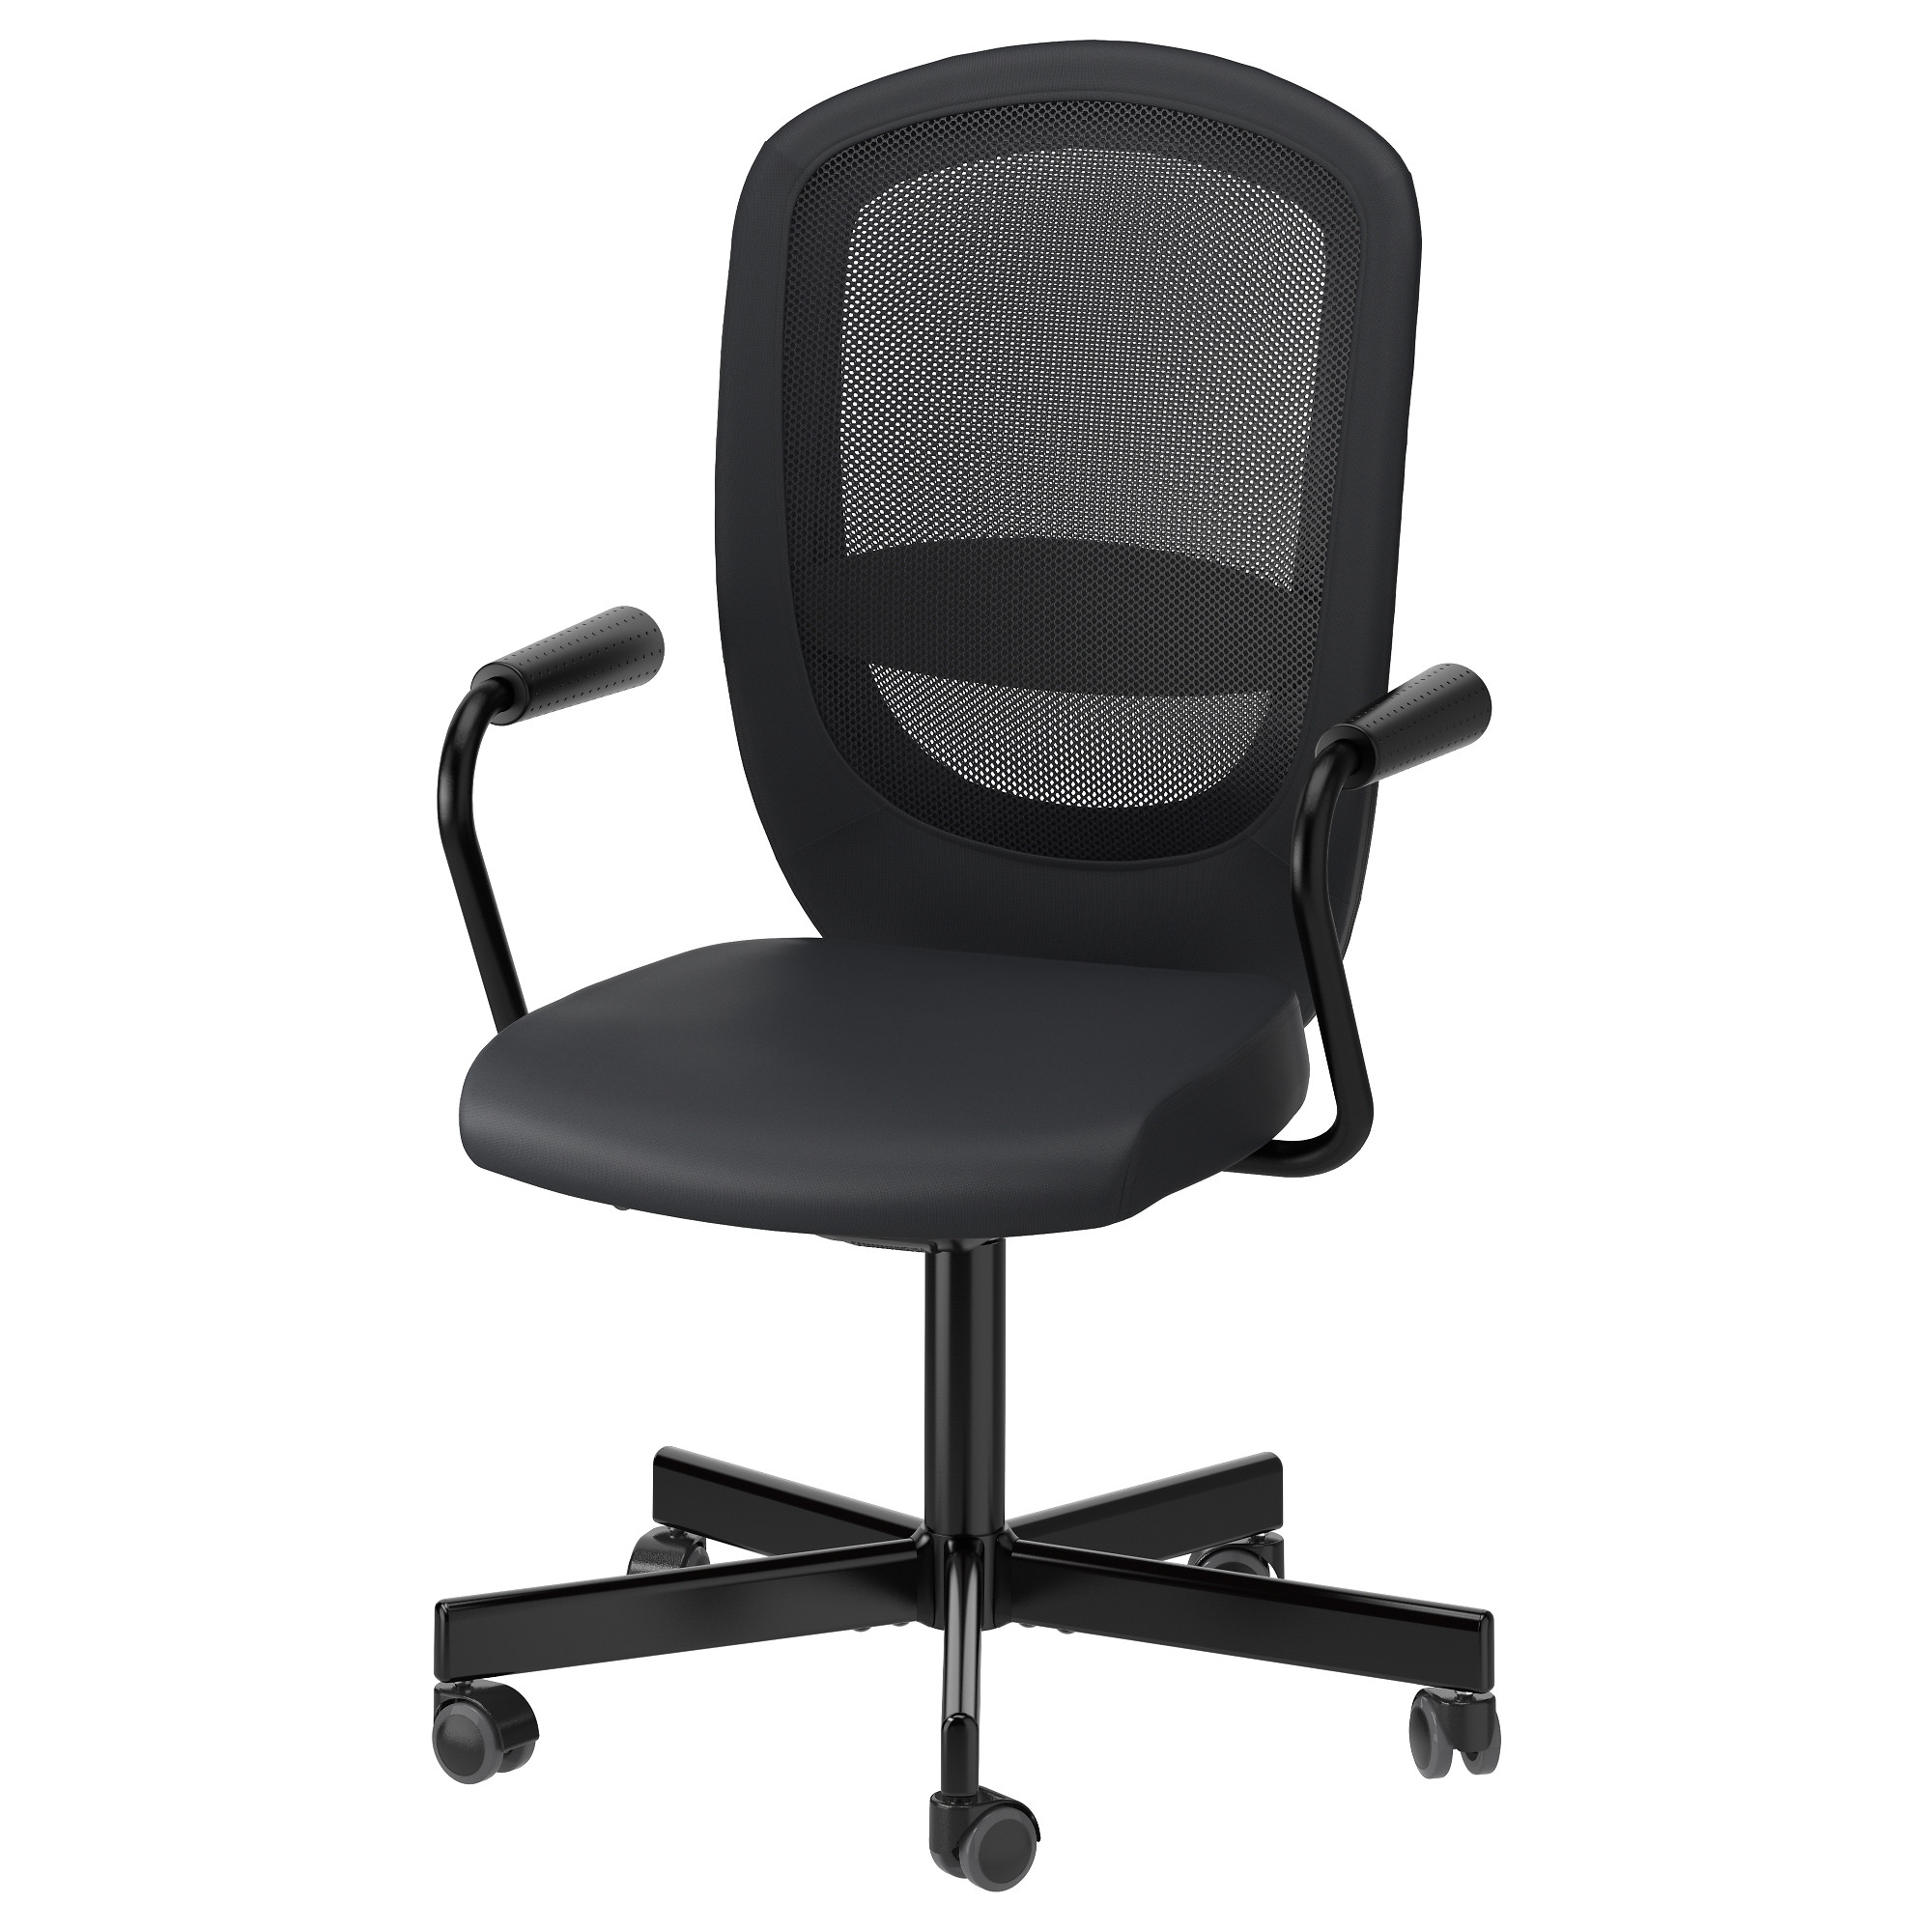 Use of office chairs for your working needs